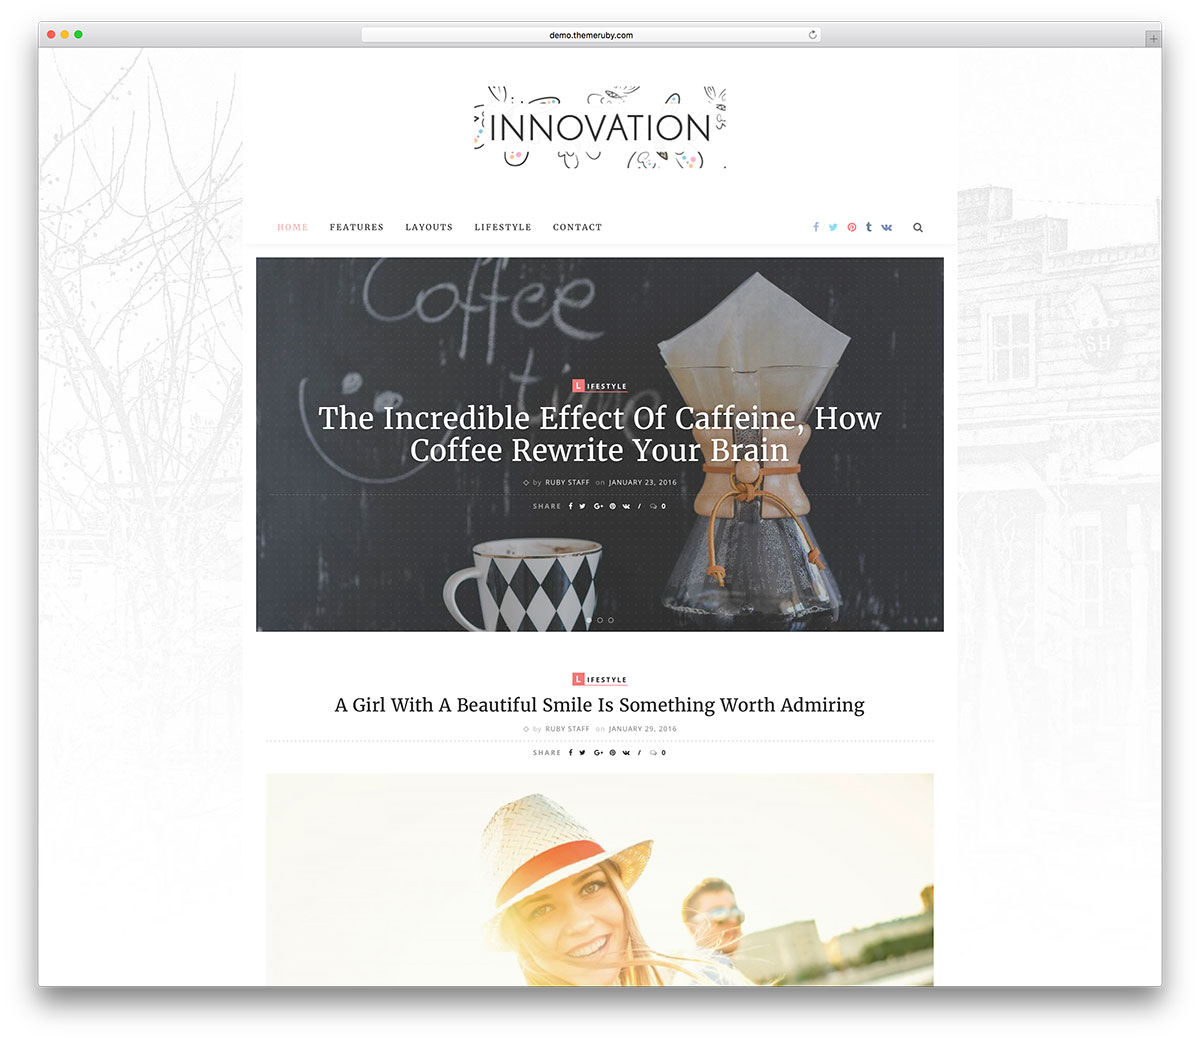 "innovation-lifestyle-wordpress-blog-template"" width=""1200"" height=""1041"" data-lazy-srcset=""https://webypress.fr/wp-content/uploads/2018/12/1546046198_921_40-meilleurs-thèmes-WordPress-Blog-personnel-2018.jpg 1200w, https://cdn.colorlib.com/wp/wp-content/uploads/sites/2/innovation-lifestyle-wordpress-blog-template-300x260.jpg 300w, https://cdn.colorlib.com/wp/wp-content/uploads/sites/2/innovation-lifestyle-wordpress-blog-template-768x666.jpg 768w, https://cdn.colorlib.com/wp/wp-content/uploads/sites/2/innovation-lifestyle-wordpress-blog-template-1024x888.jpg 1024w"" data-lazy-sizes=""(max-width: 1200px) 100vw, 1200px"" data-lazy-src=""https://webypress.fr/wp-content/uploads/2018/12/1546046198_921_40-meilleurs-thèmes-WordPress-Blog-personnel-2018.jpg?is-pending-load=1"" srcset=""data:image/gif;base64,R0lGODlhAQABAIAAAAAAAP///yH5BAEAAAAALAAAAAABAAEAAAIBRAA7""/></p> <p><noscript><img class="